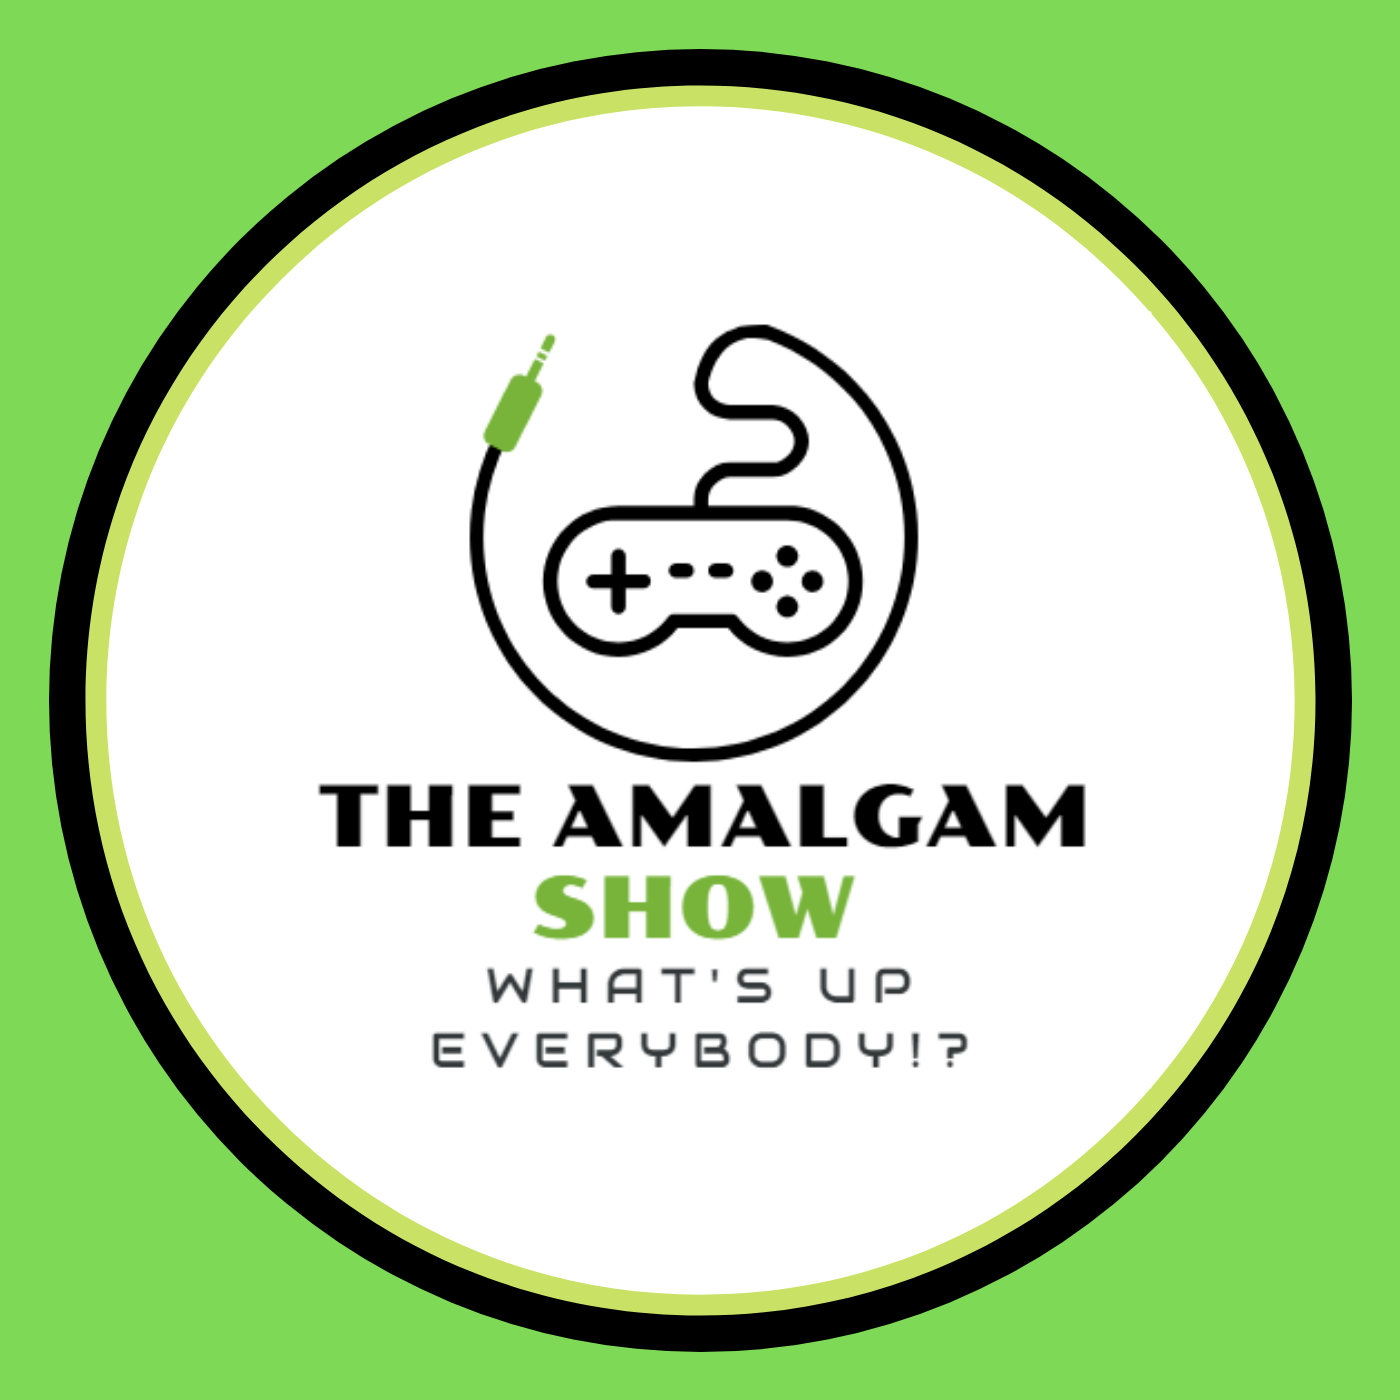 More Star Wars Jedi Fallen Order Impressions and the bad quality of Riverdale - The Amalgam Show Episode 89